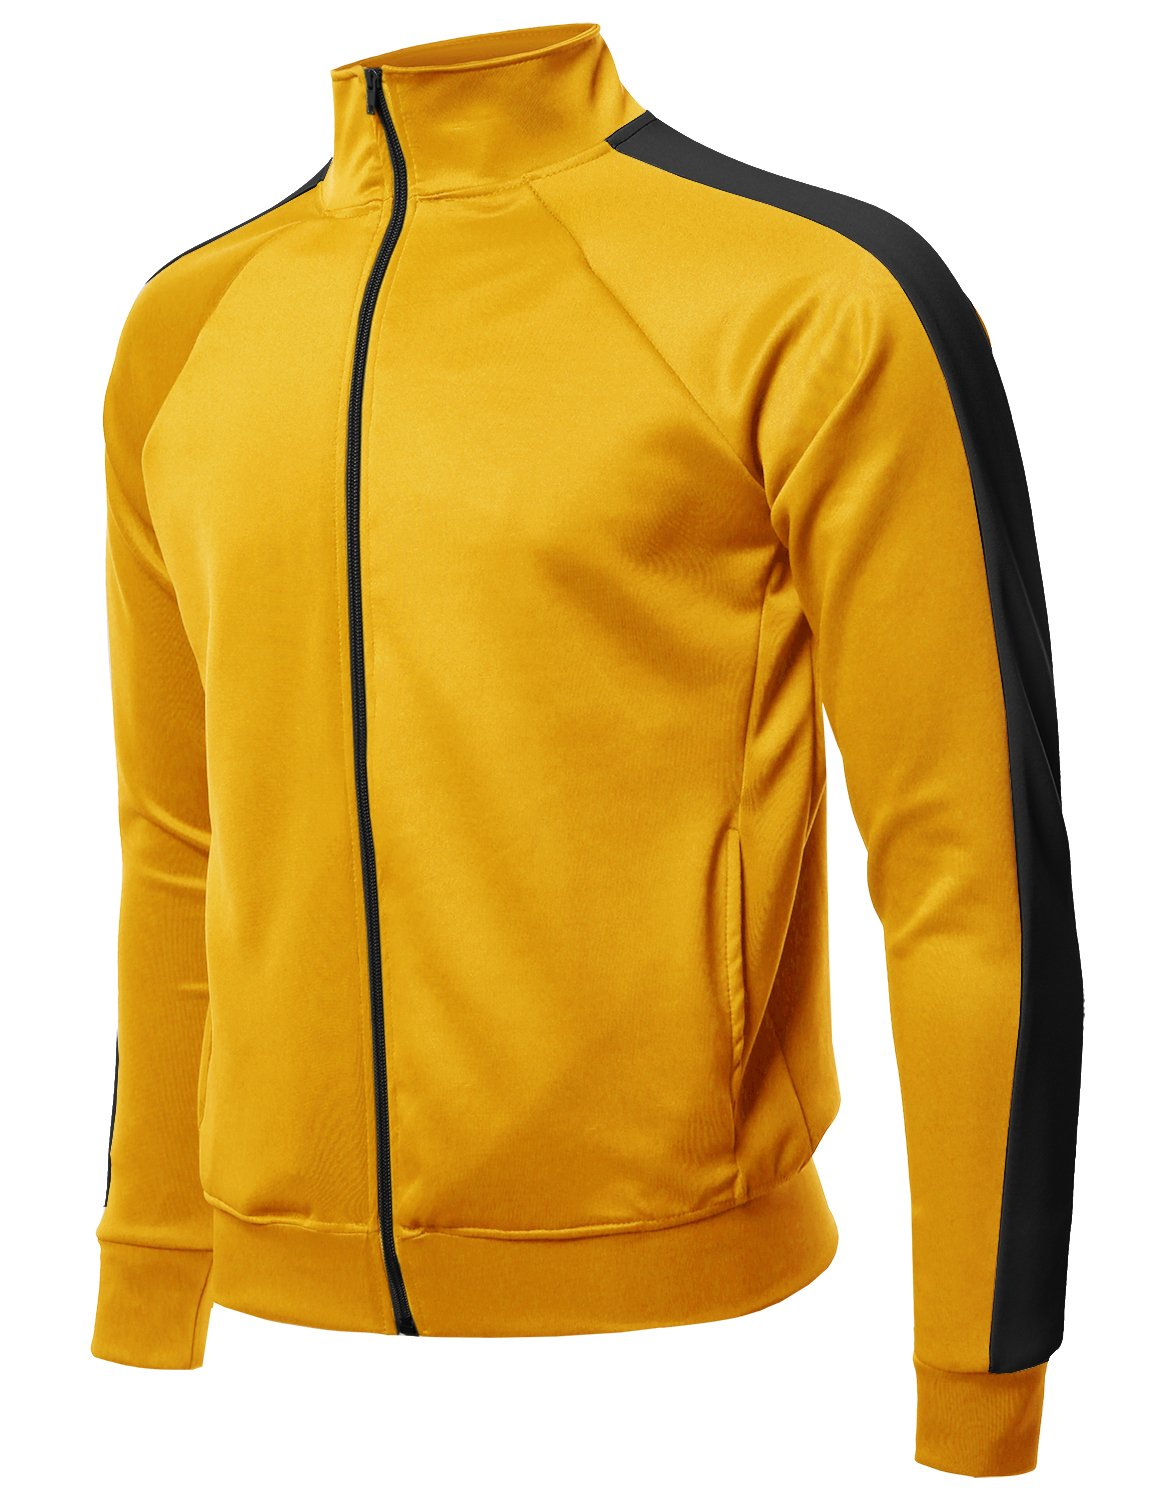 Premium Quality Shoulder Panel Zip-up Track Jacket Yellow Black L by Style by William